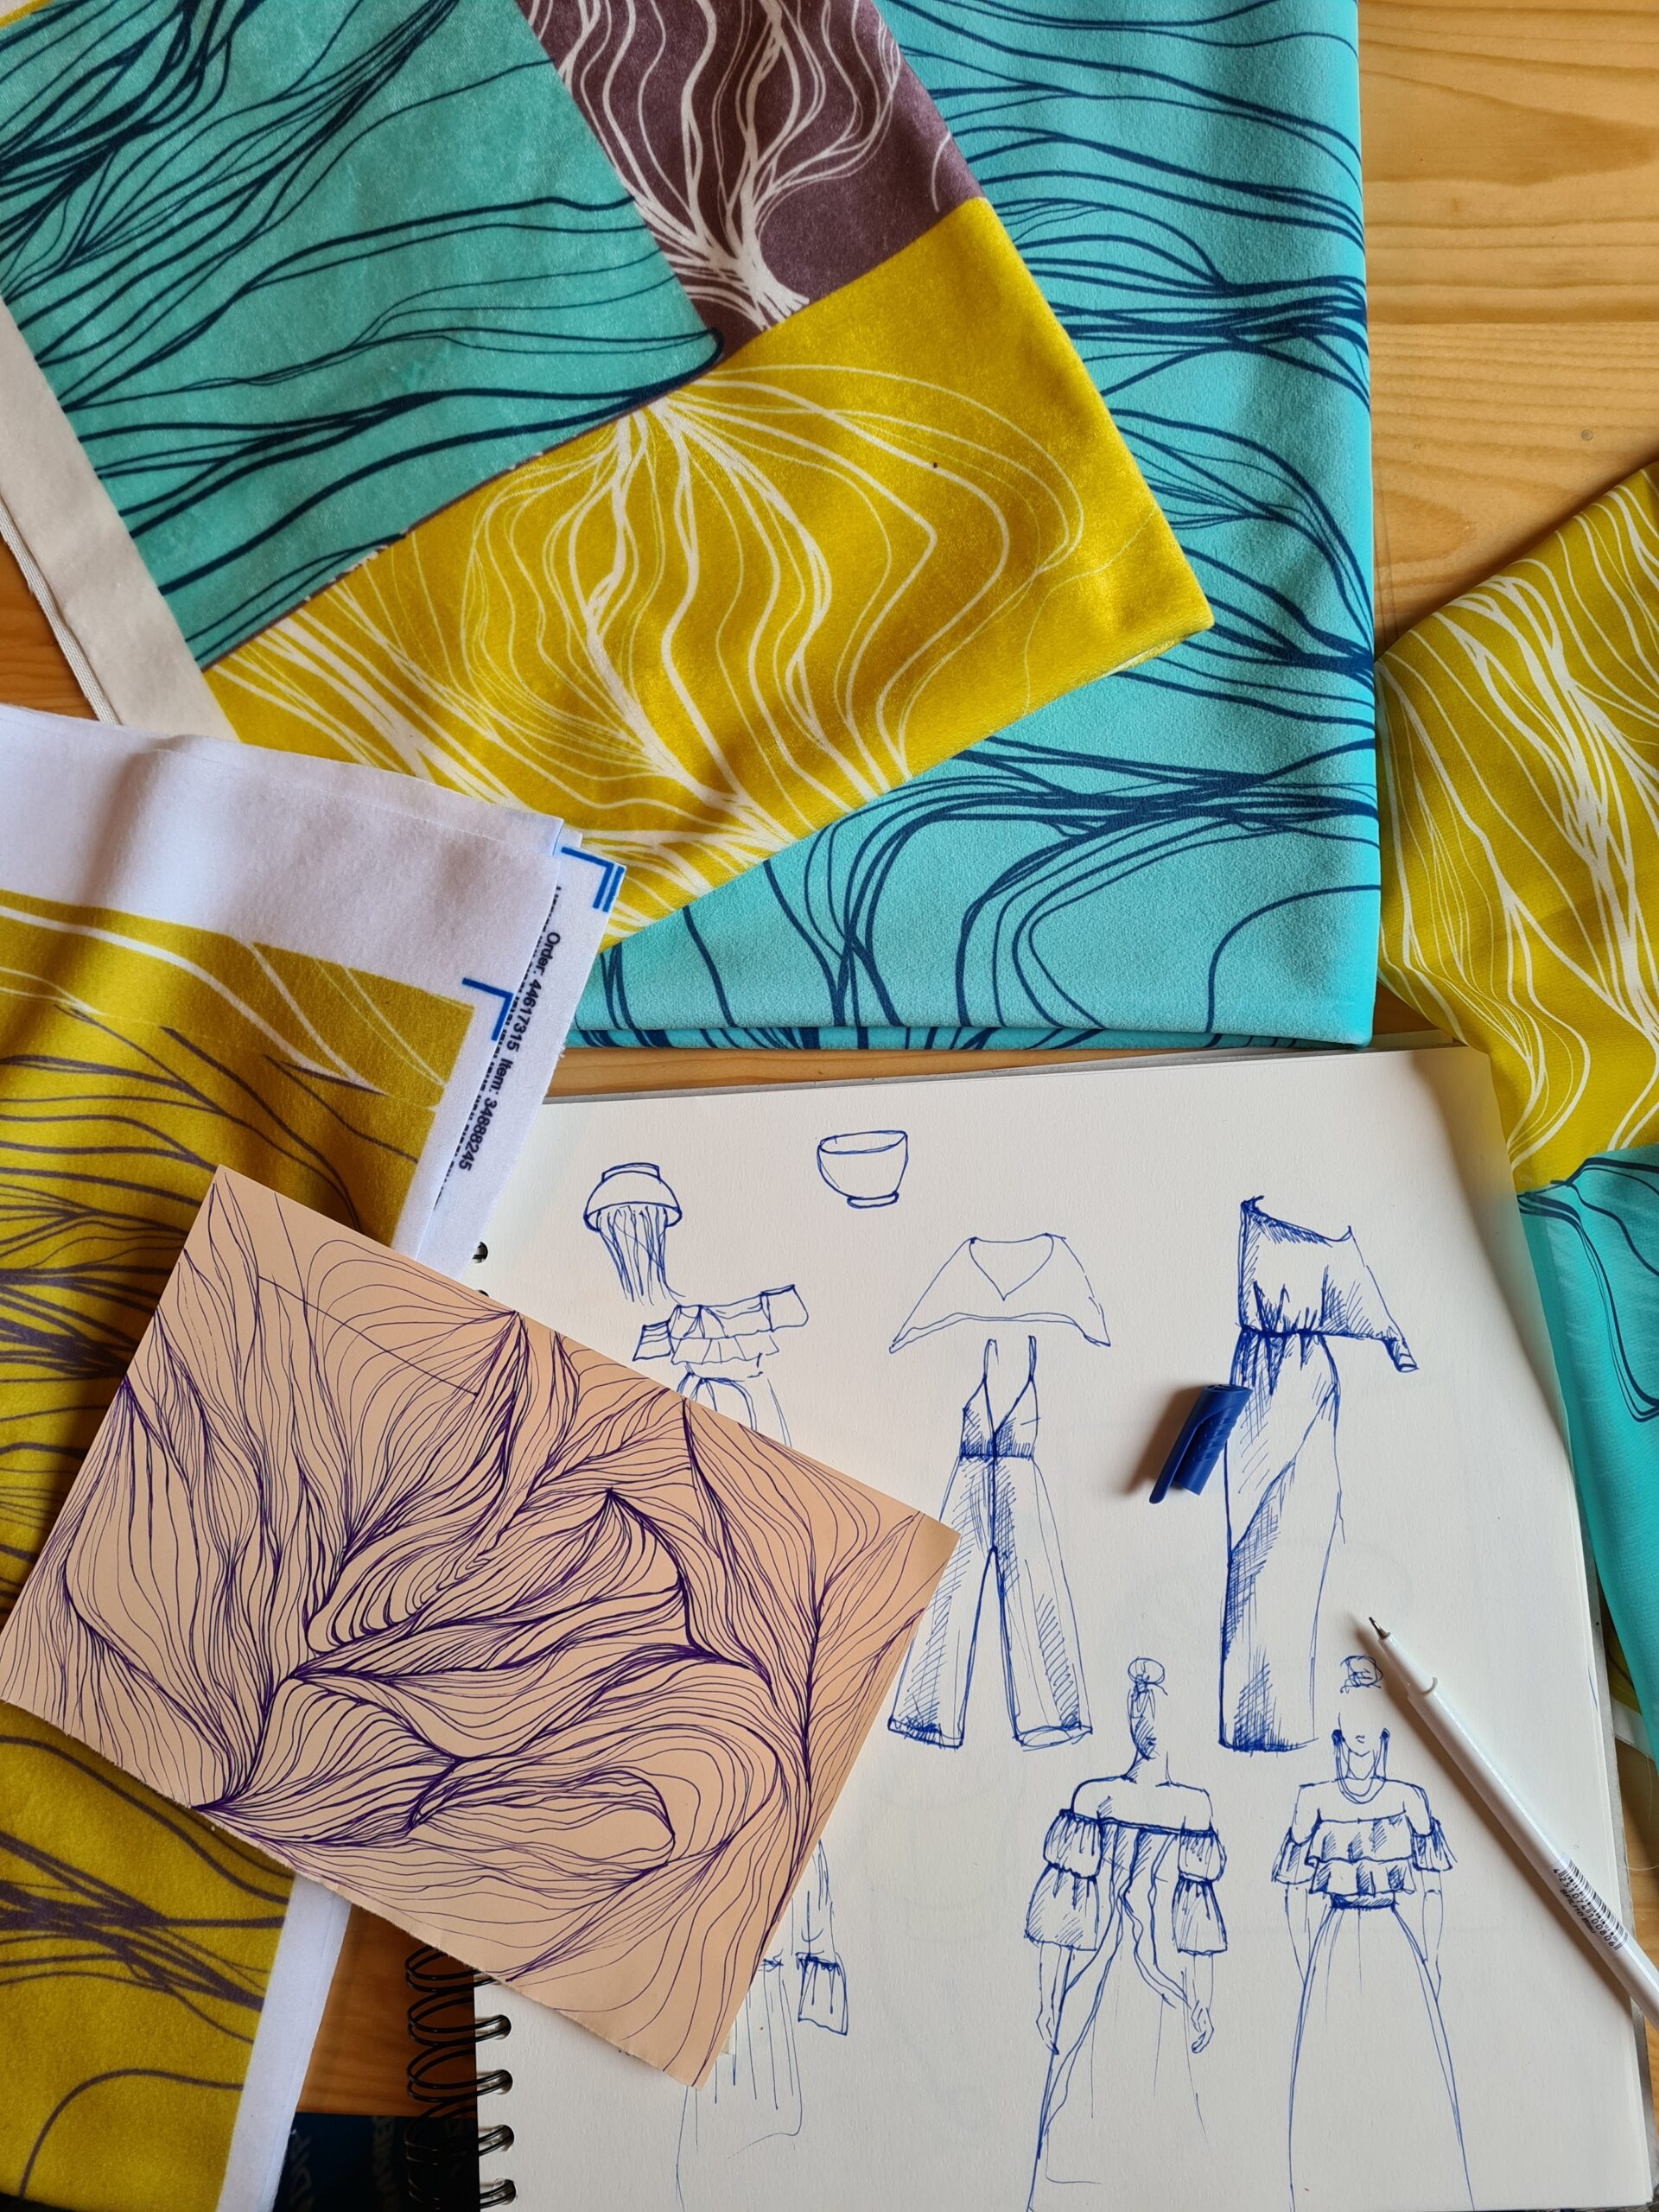 Blue and green fabric designs on the floor with fashion sketches